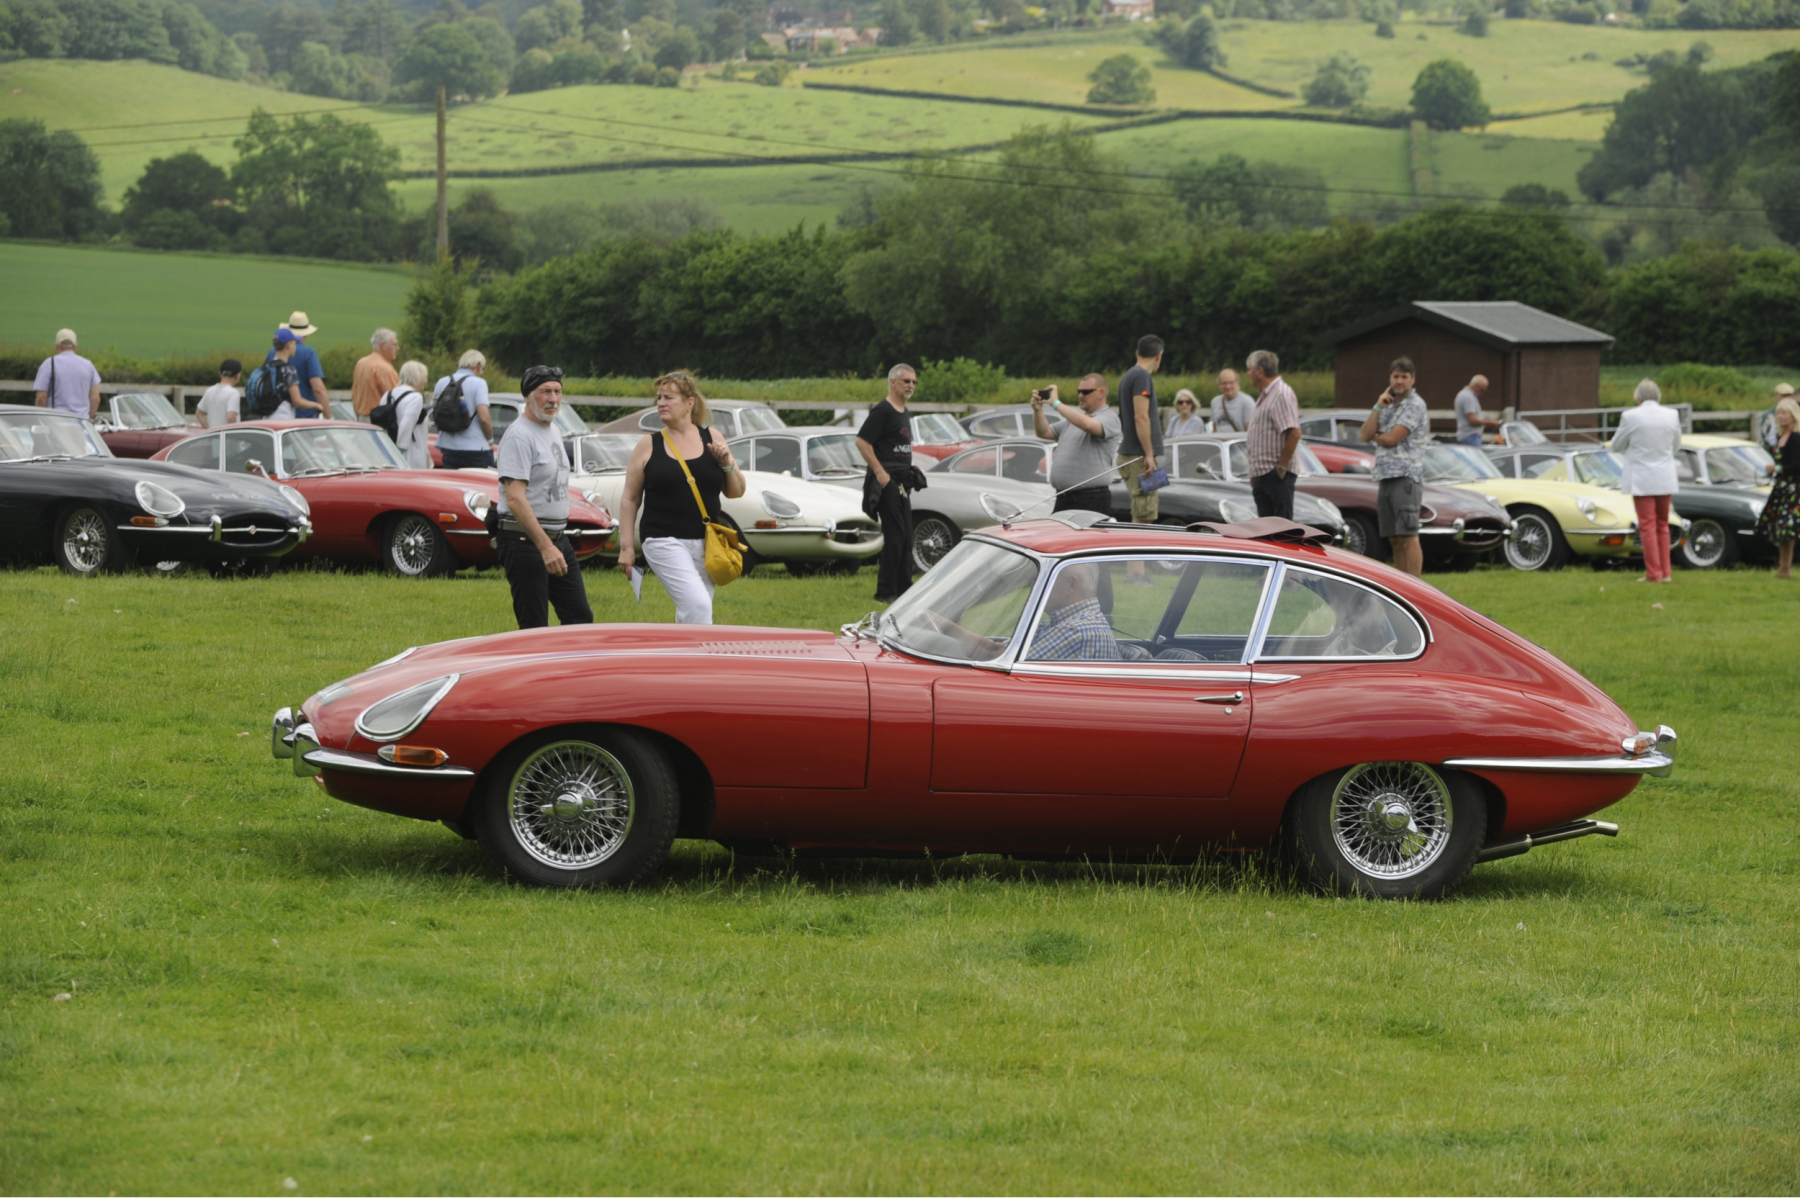 E-type-60-Saturday-photo-by-Abigail-Humphries-262